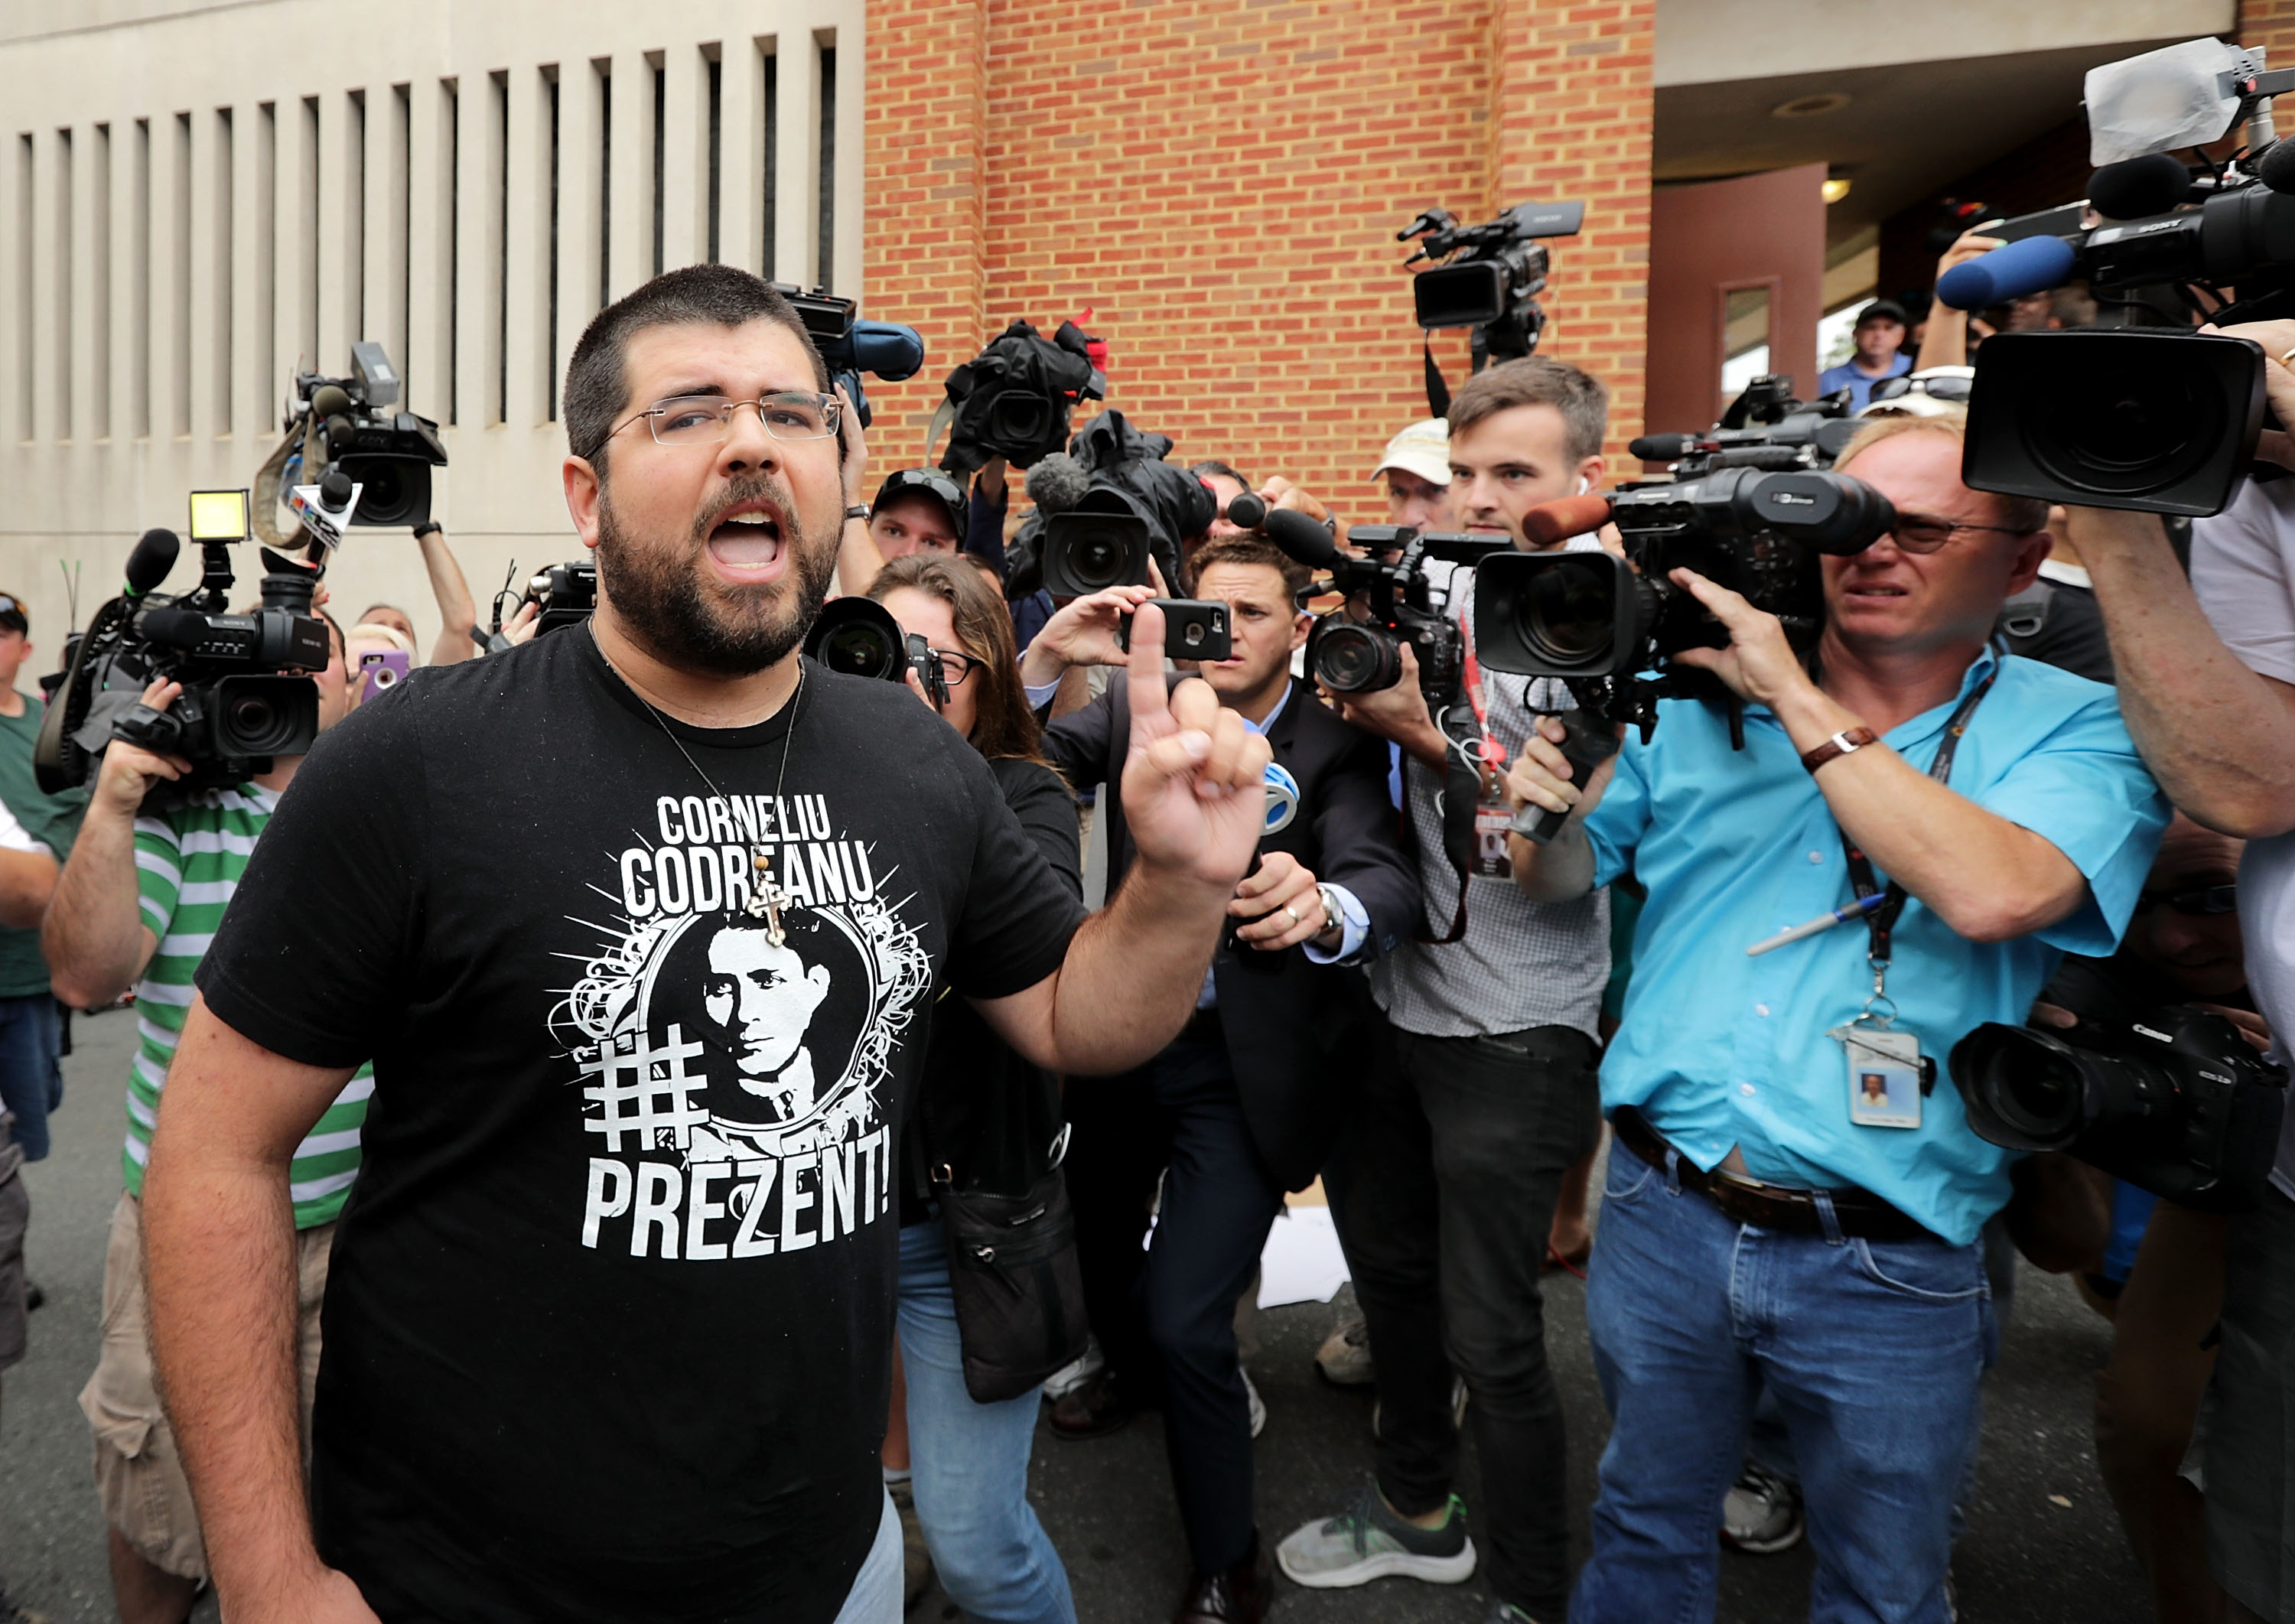 Matthew Heinbach, a white nationalist, shouts at reporters gathered outside the Charlottesville General District Court building August 14.